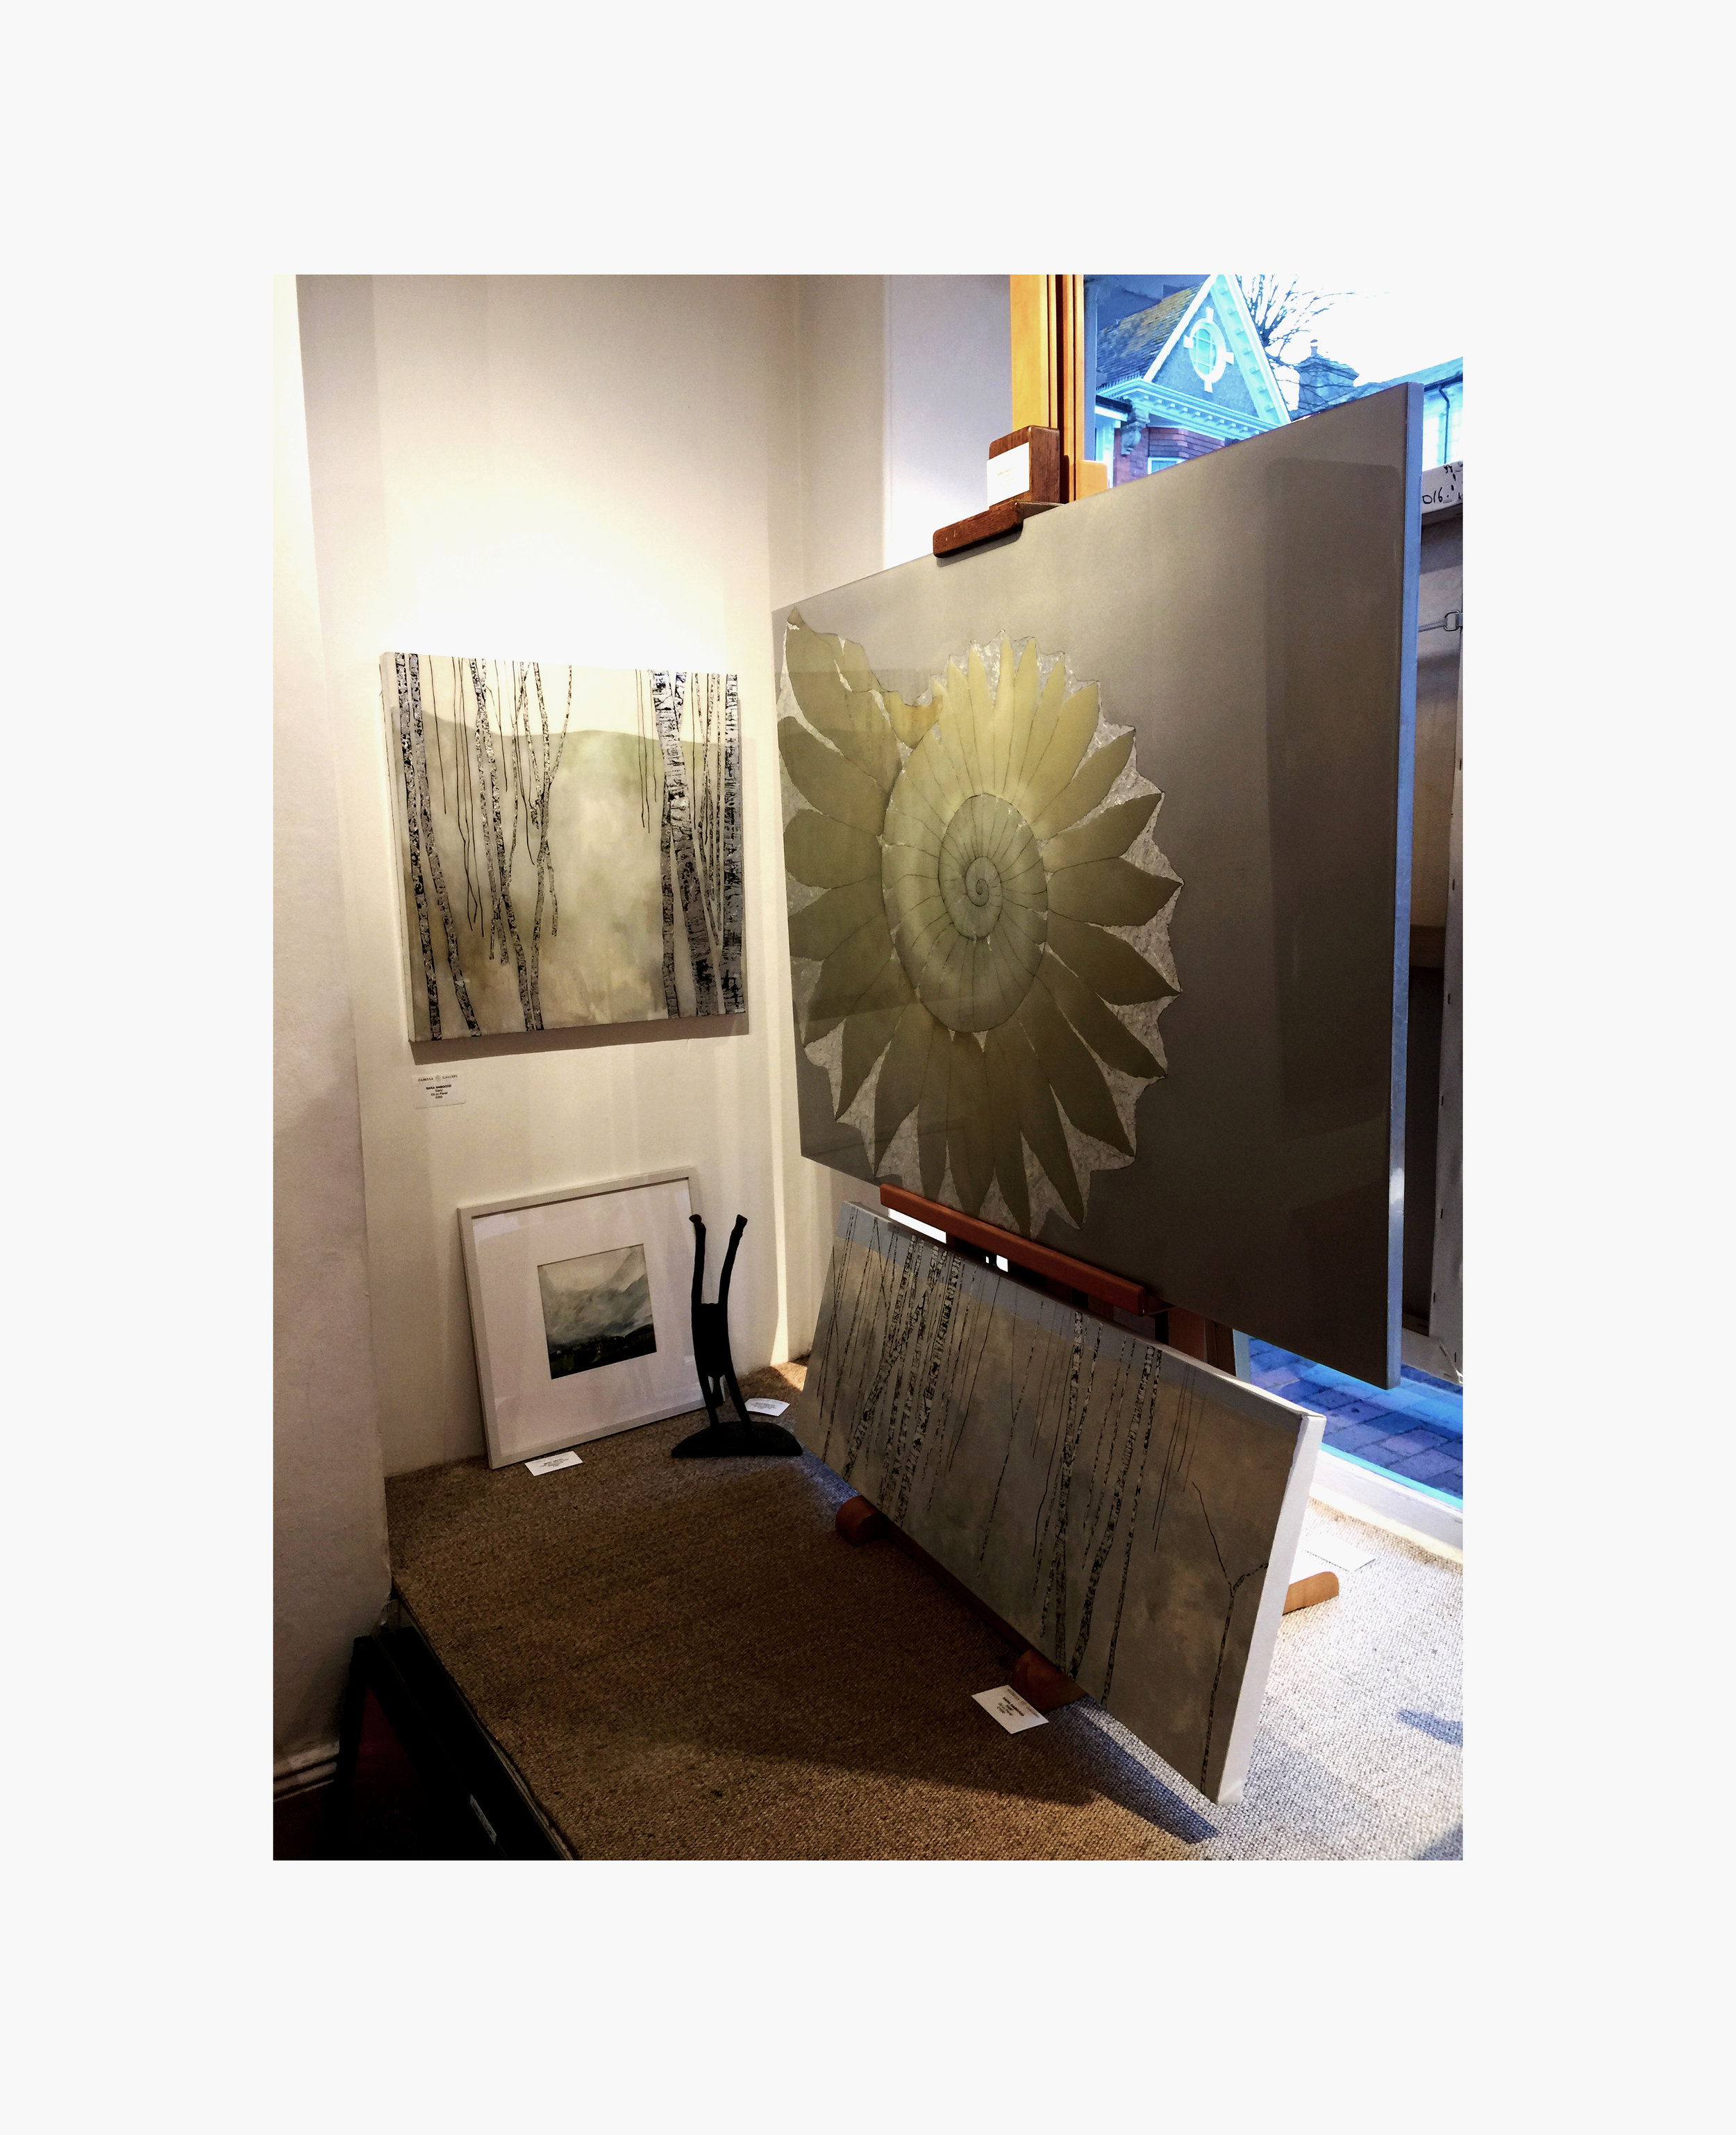 Ammonite and Birch Tree Paintings shown at The Fairfax Gallery